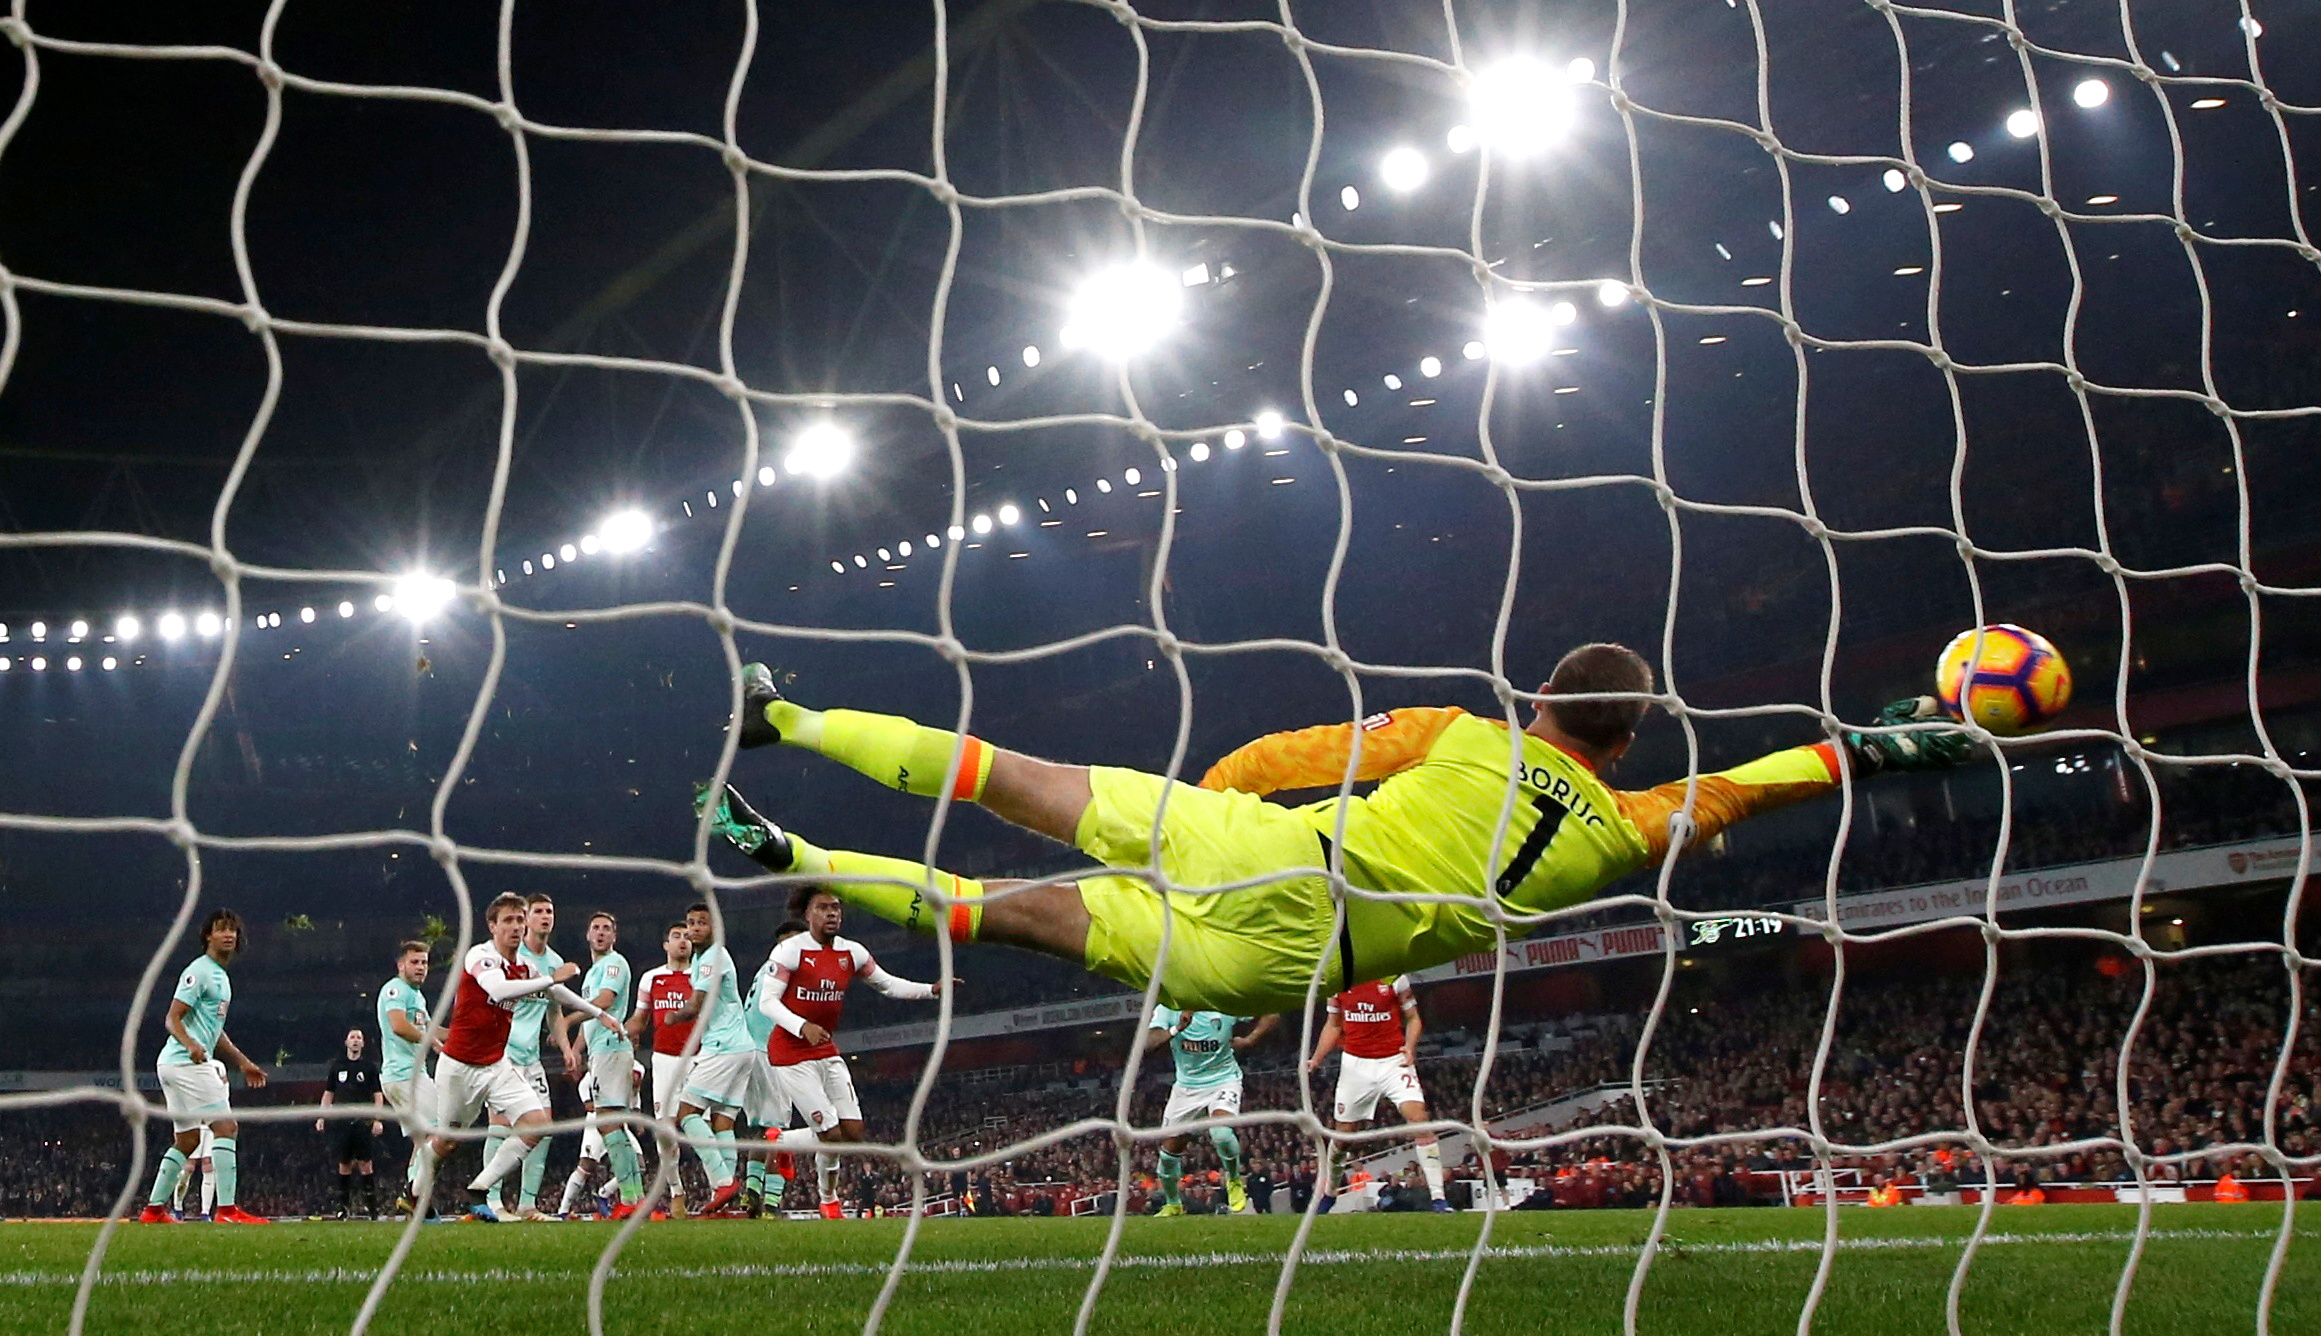 Soccer Football - Premier League - Arsenal v AFC Bournemouth - Emirates Stadium, London, Britain - February 27, 2019  Arsenal's Alexandre Lacazette scores their fifth goal from a free kick               Action Images via Reuters/Peter Cziborra